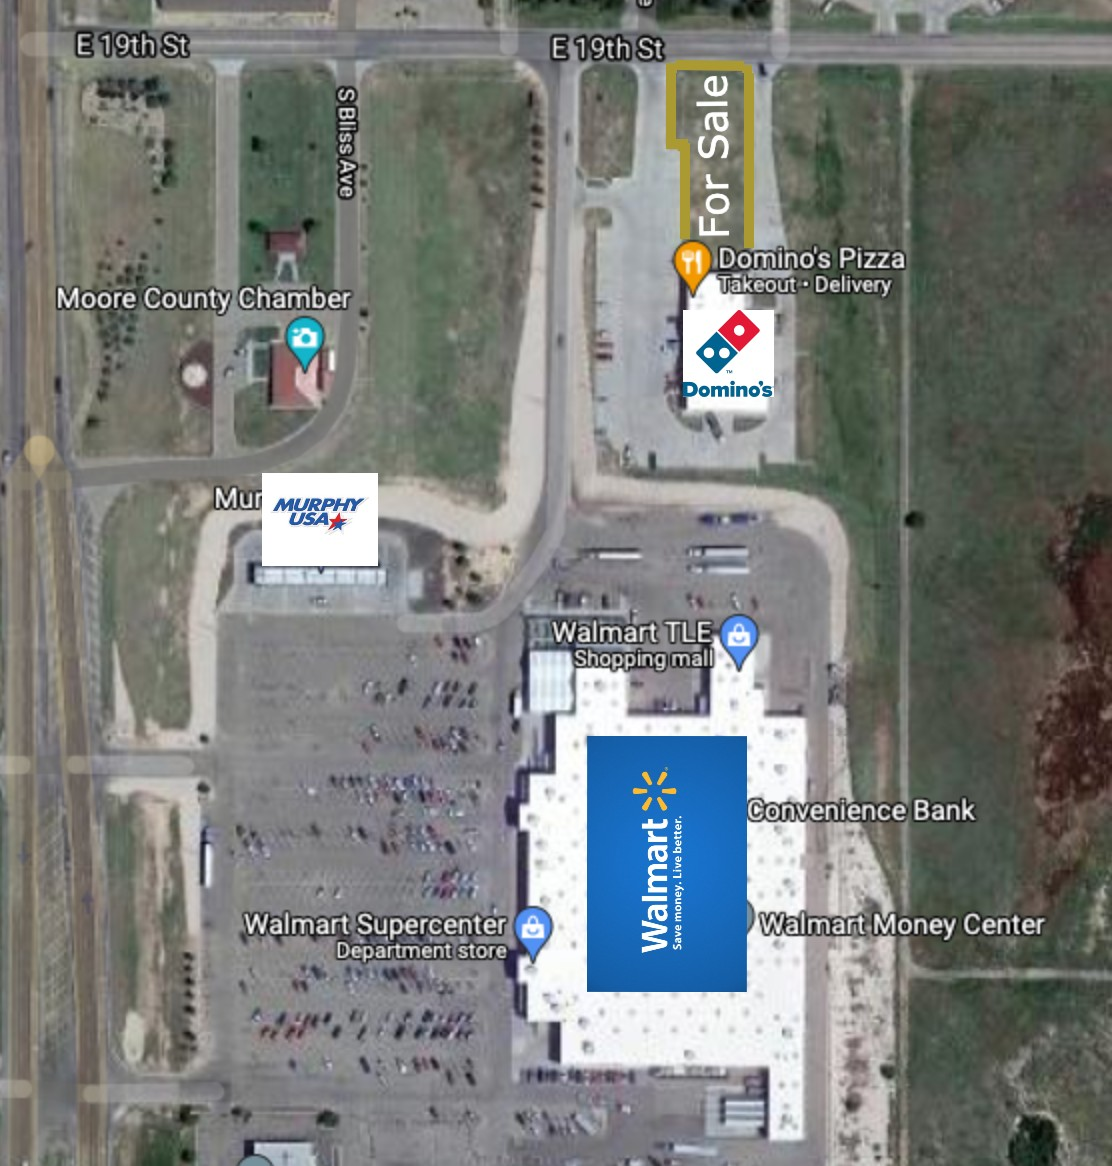 satellite image with a blue logo that says walmart, white logo with a red dominos pizza logo, and white logo with red lettres that says murphys pizza